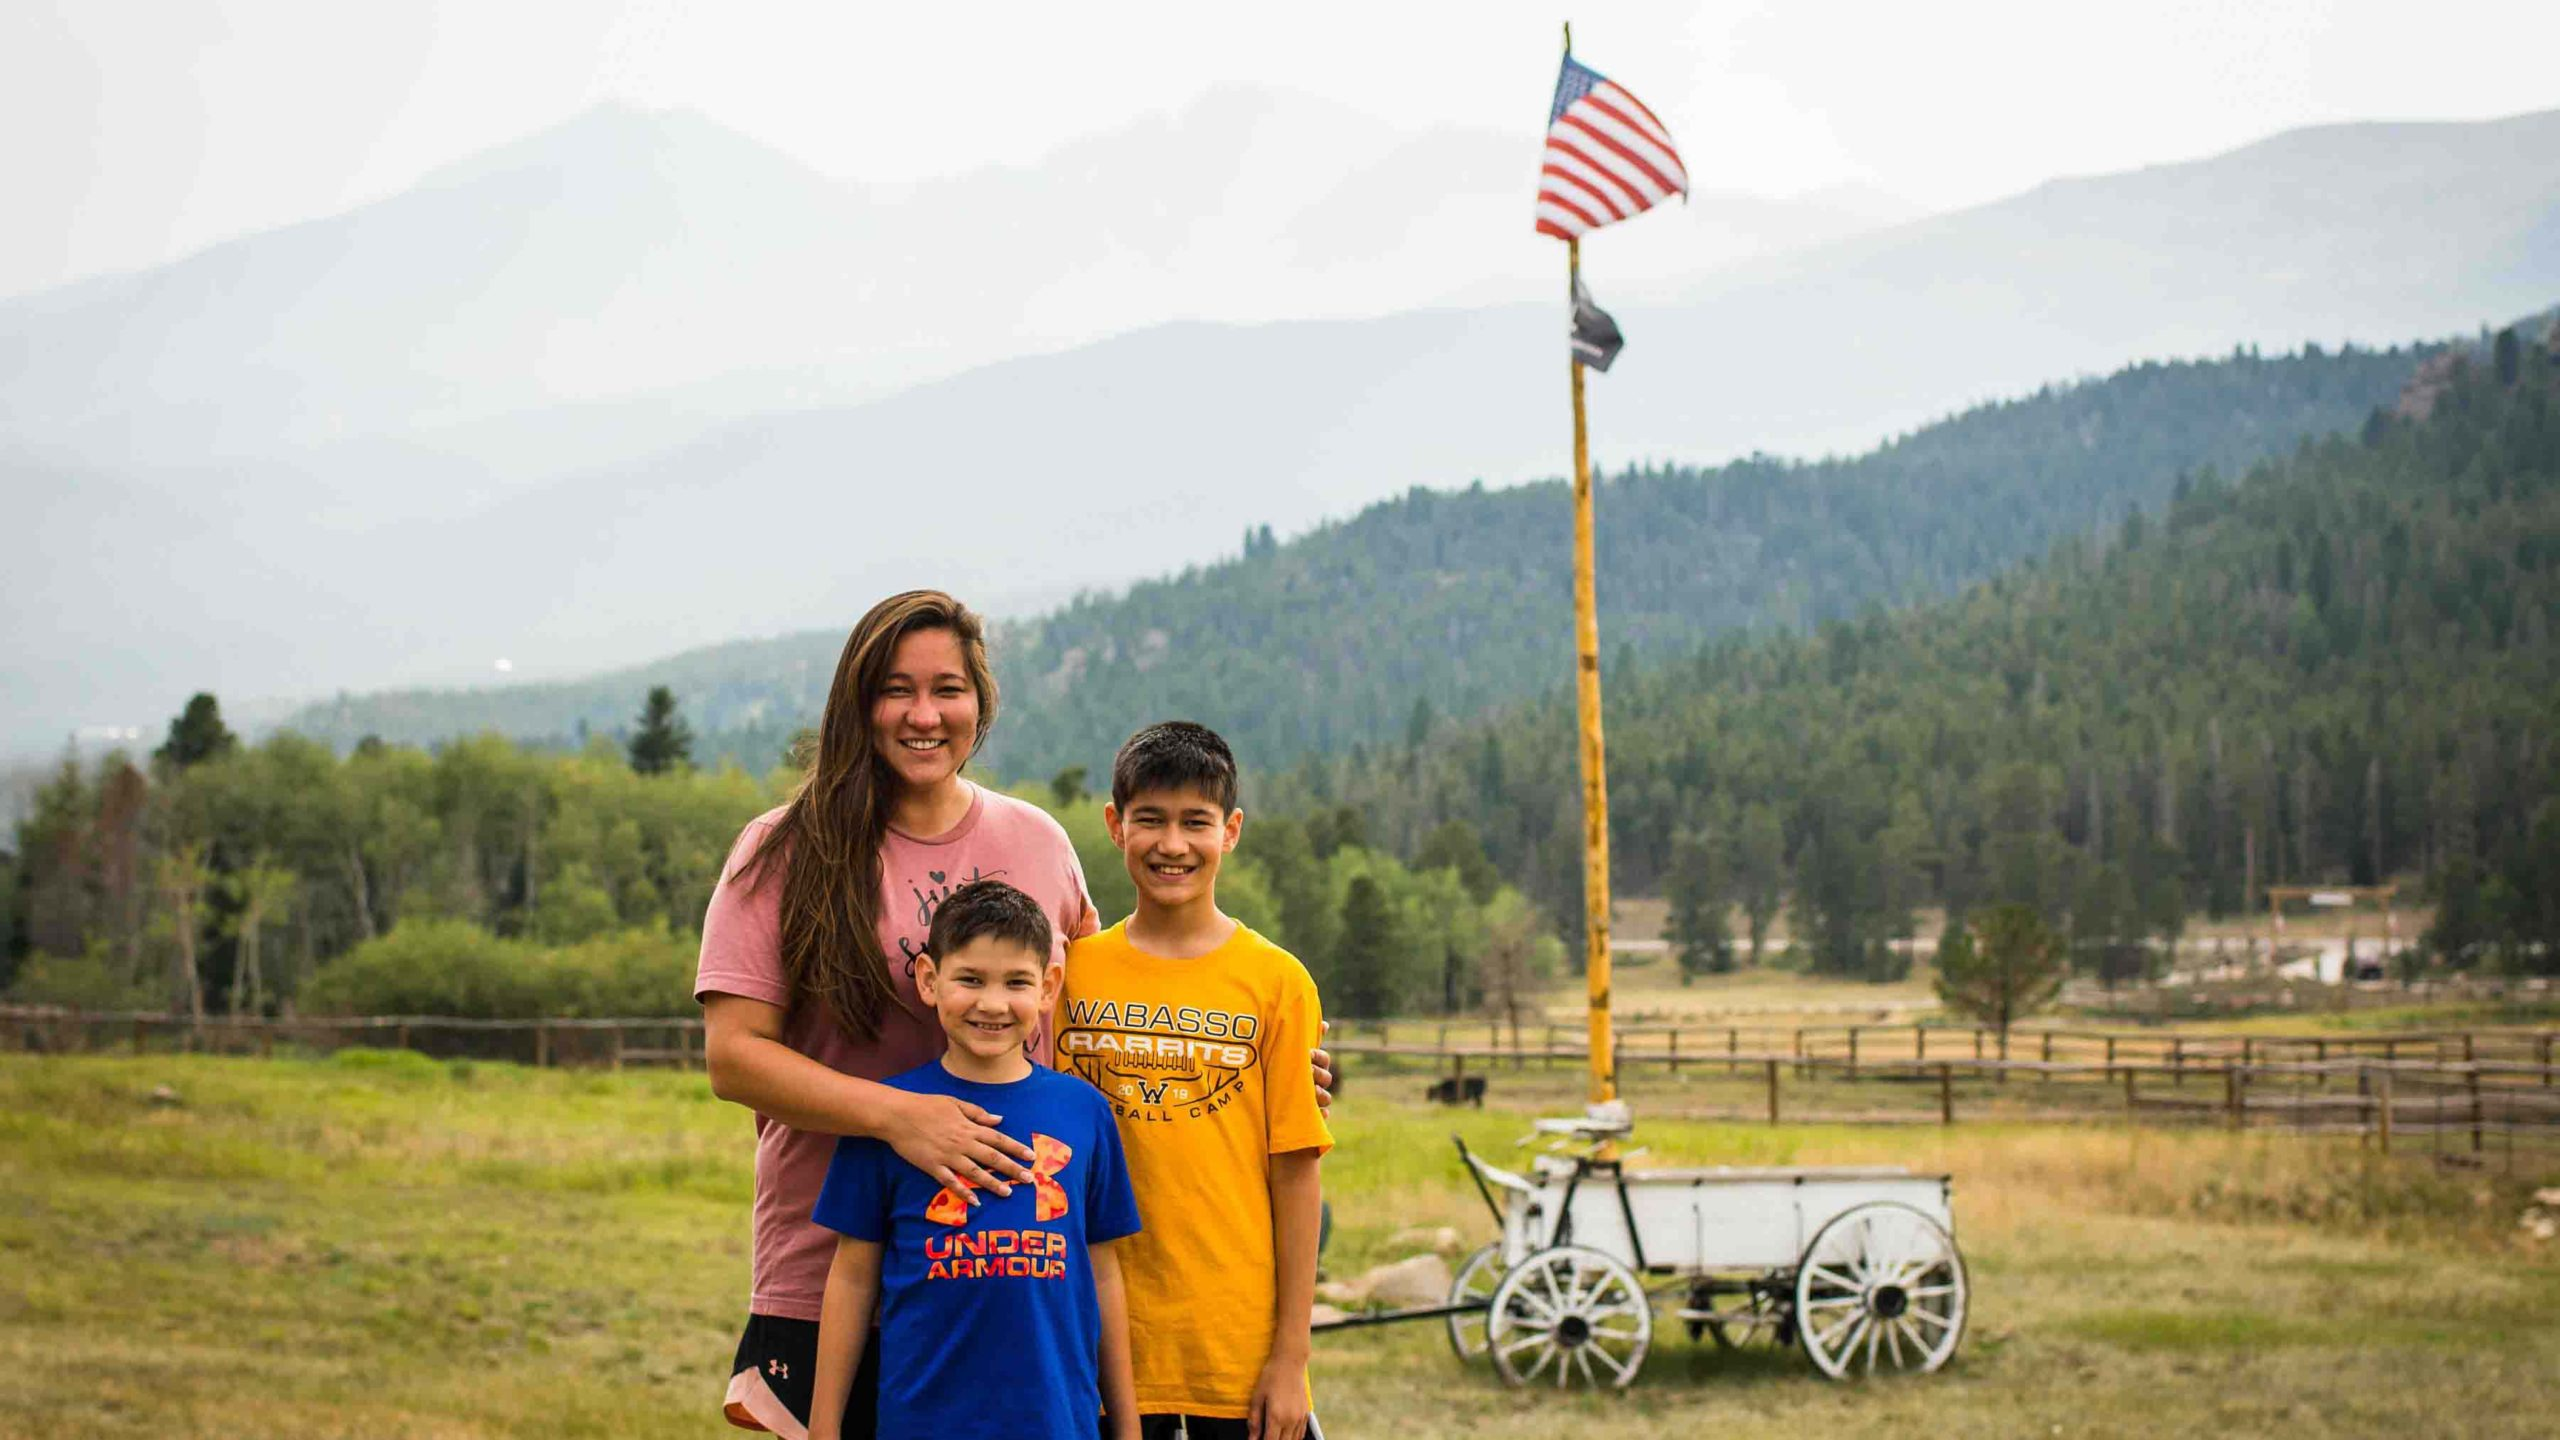 Family posing in front of the american flag